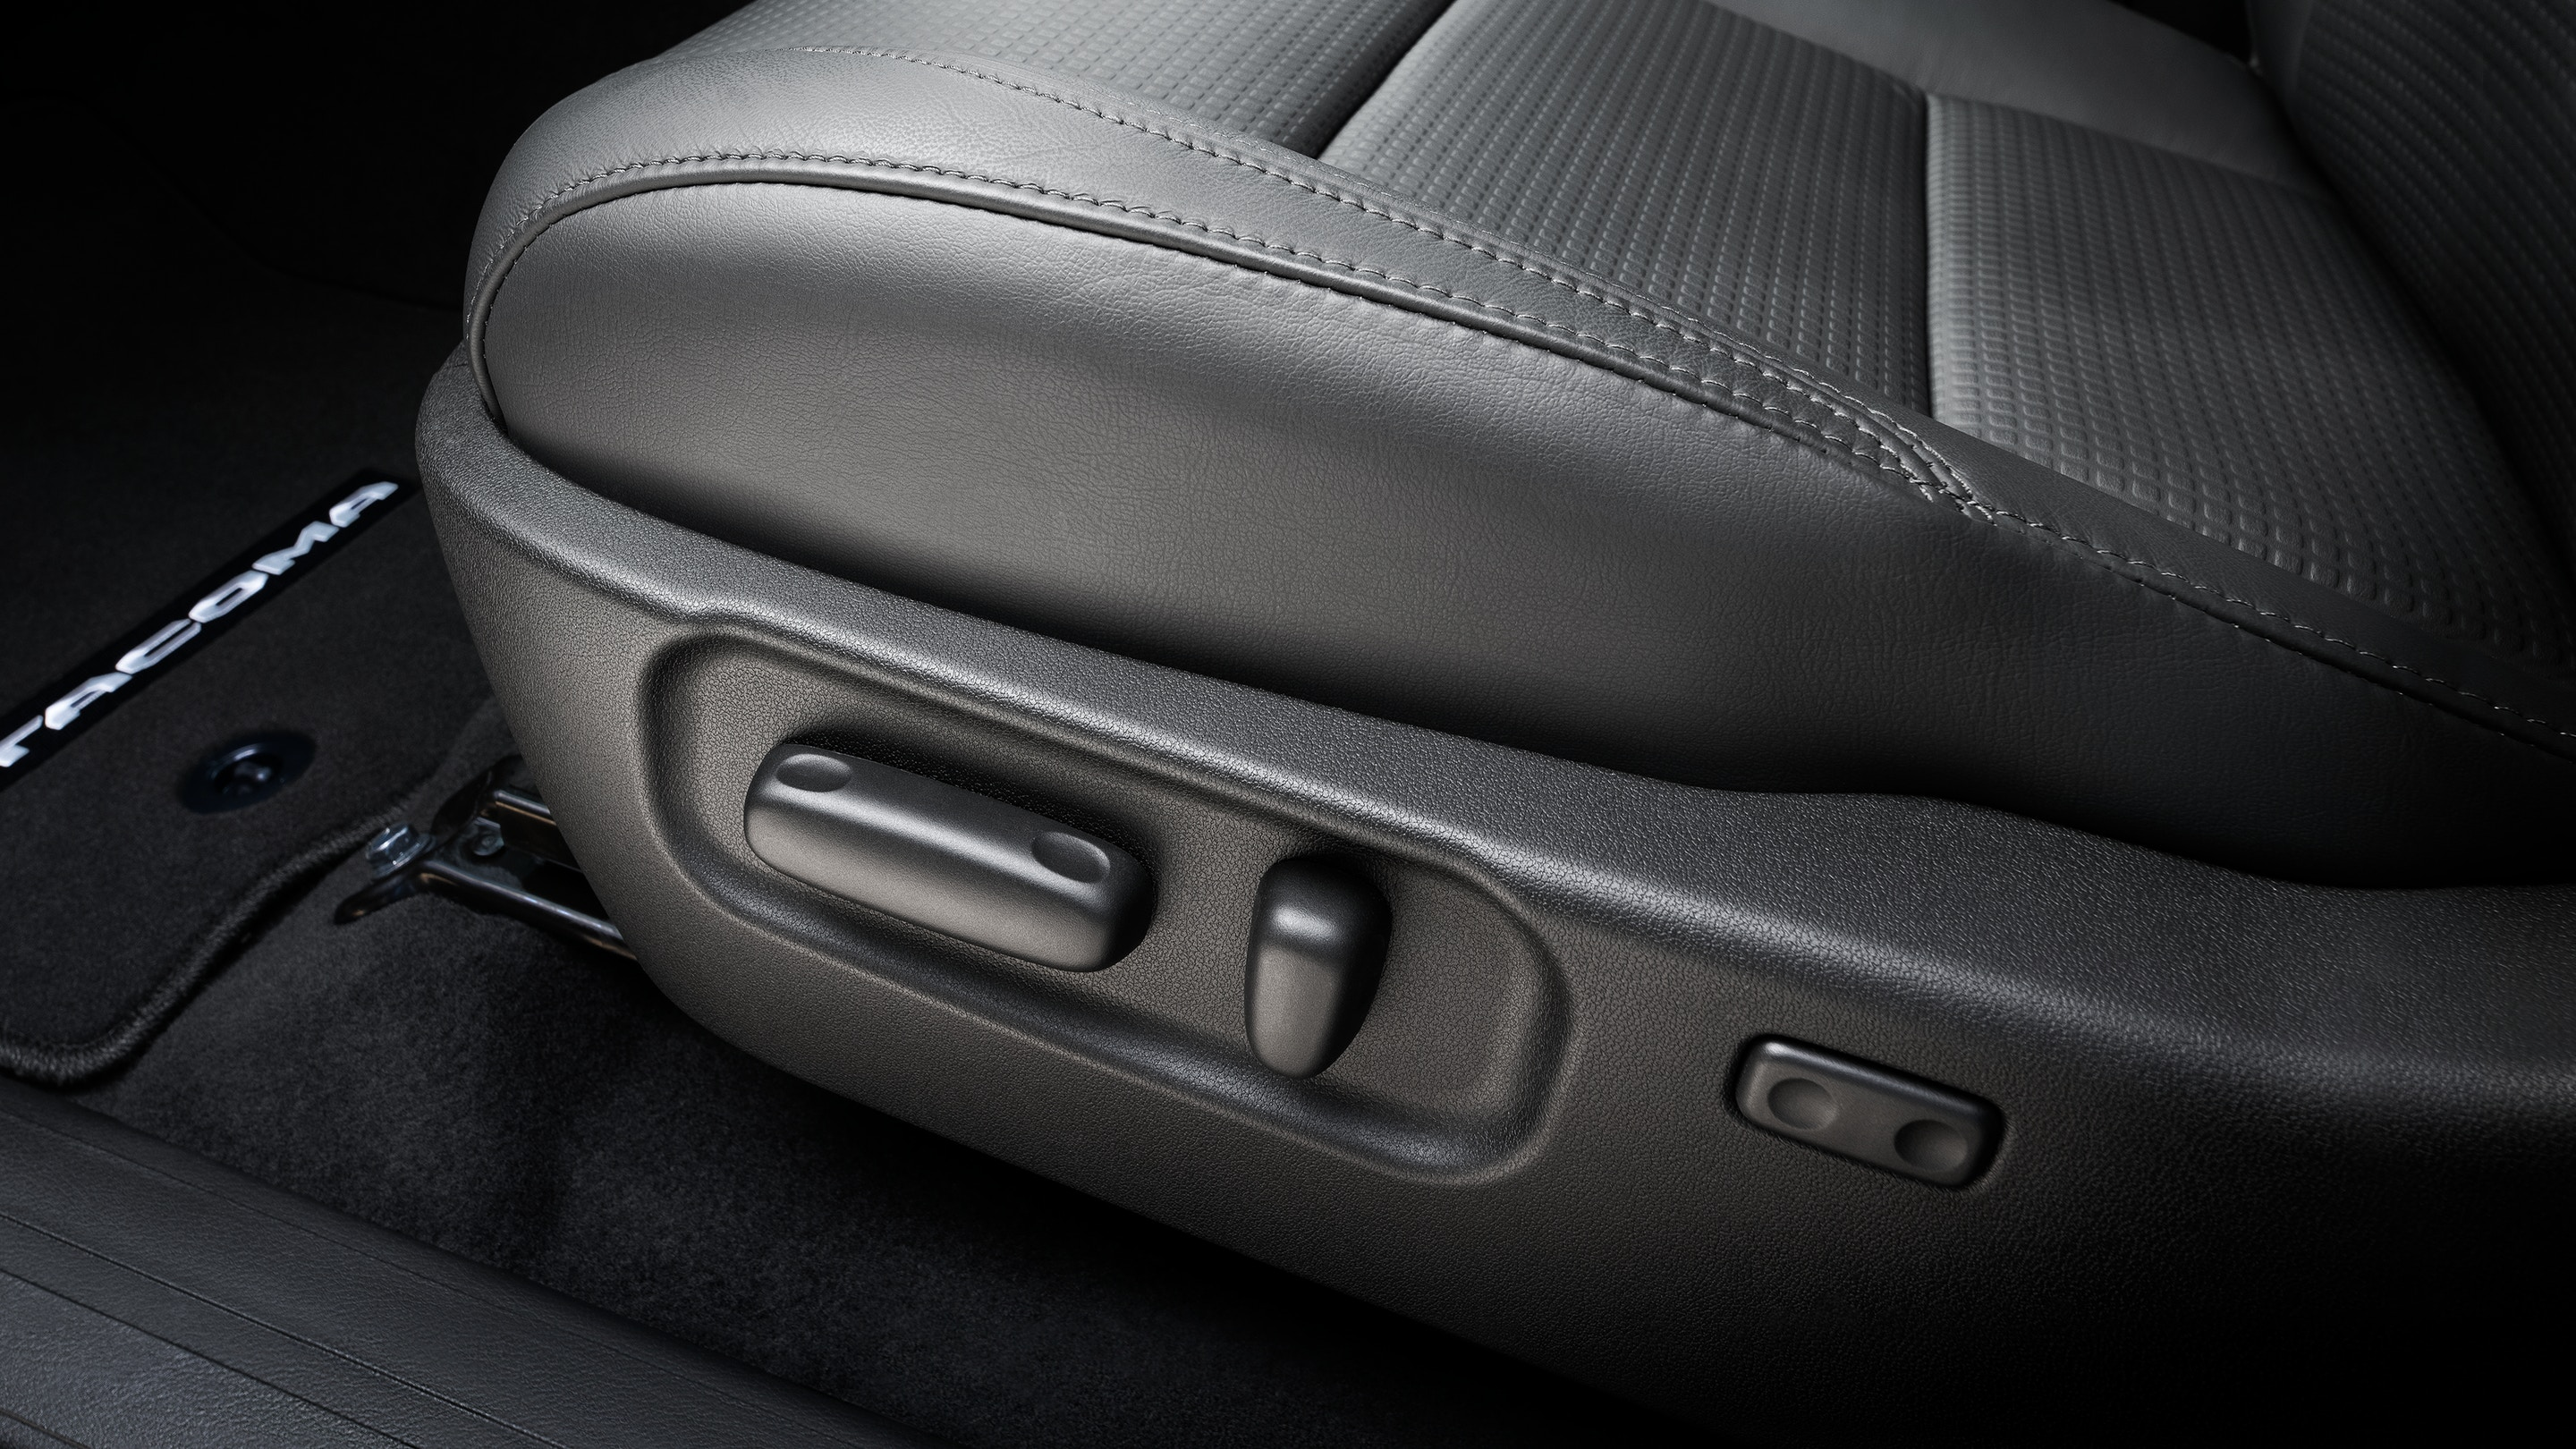 Memory Seat in the 2020 Tacoma